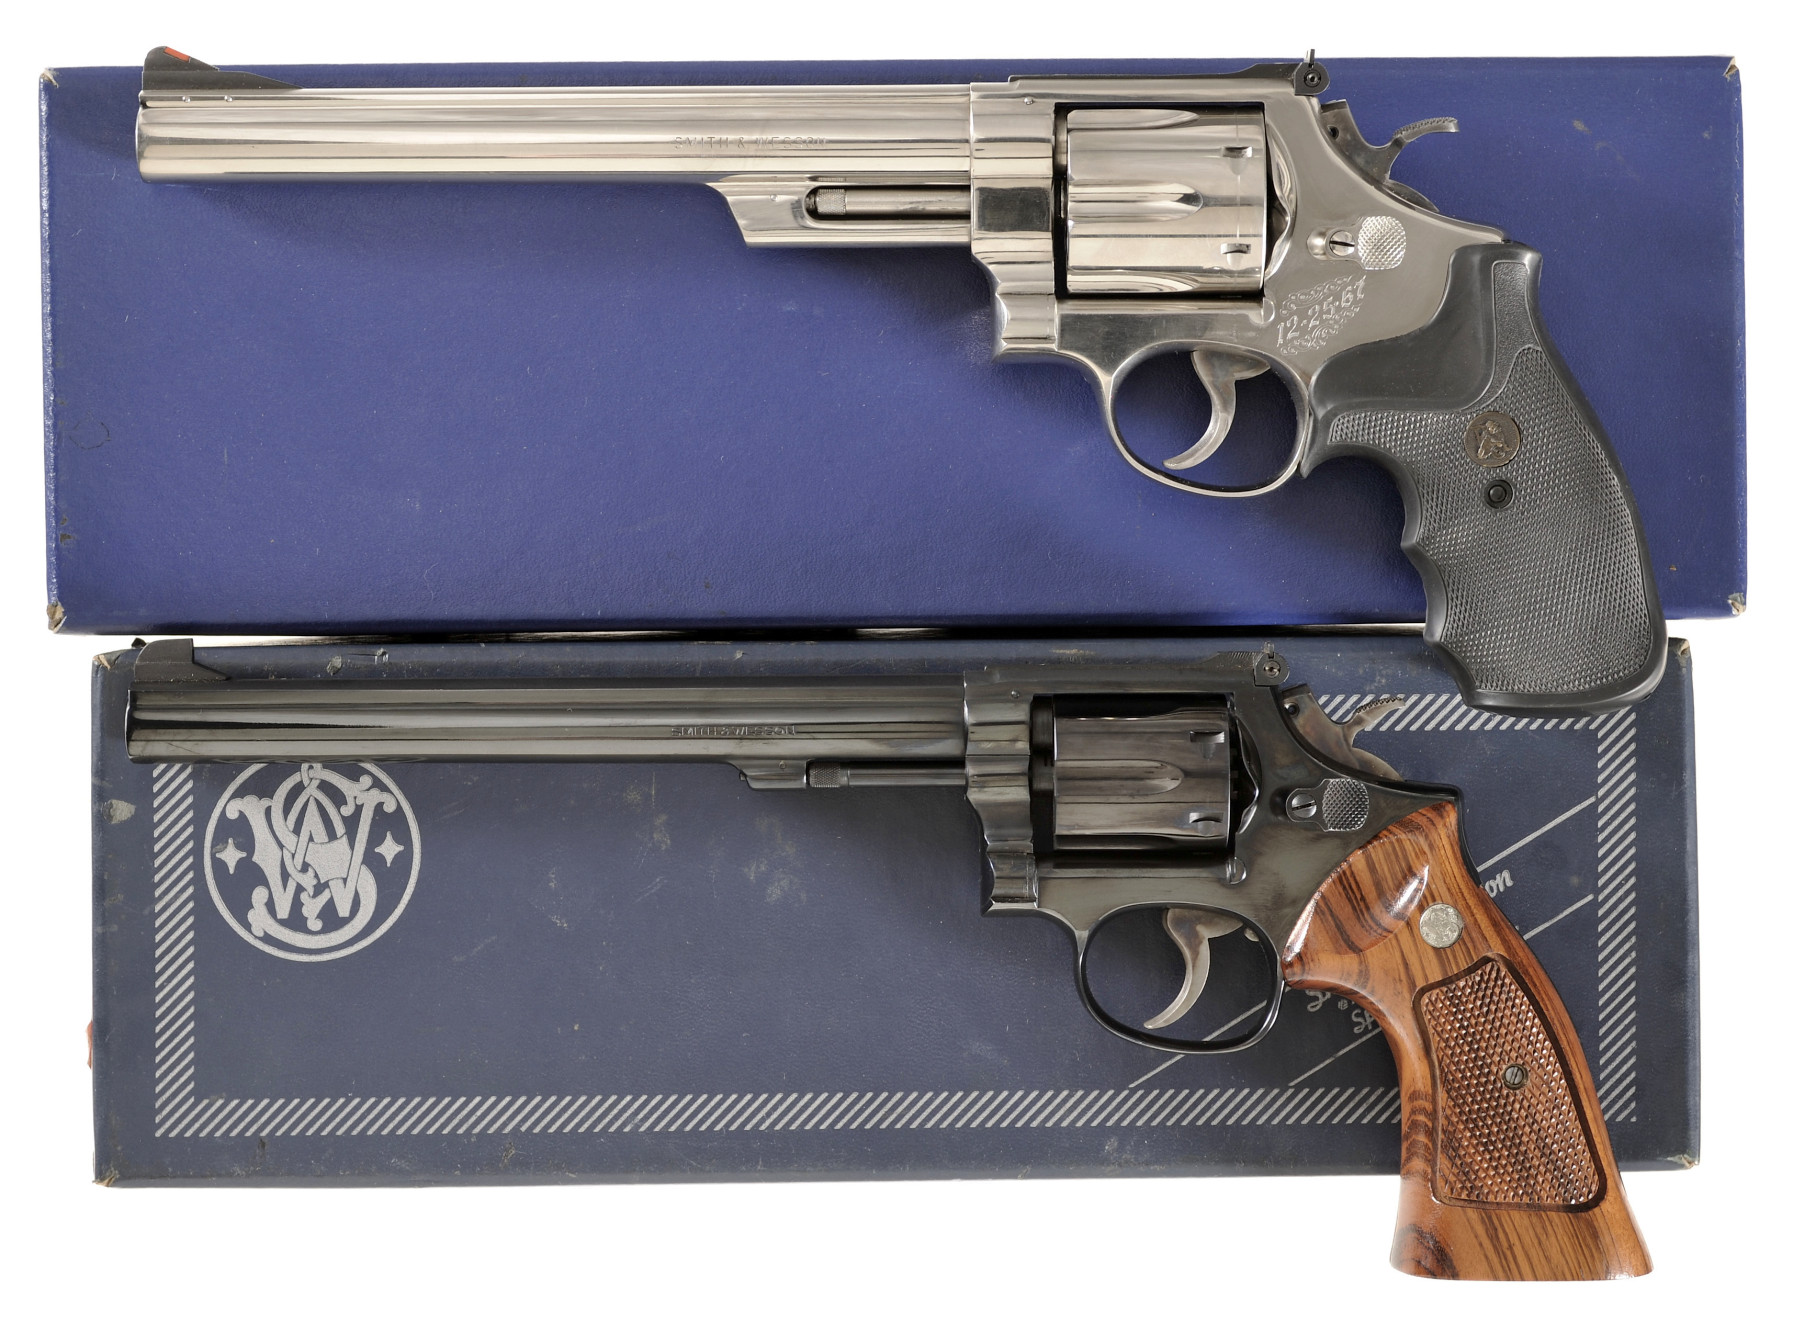 Two Smith & Wesson Double Action Revolvers -A) Smith & Wesson Mo